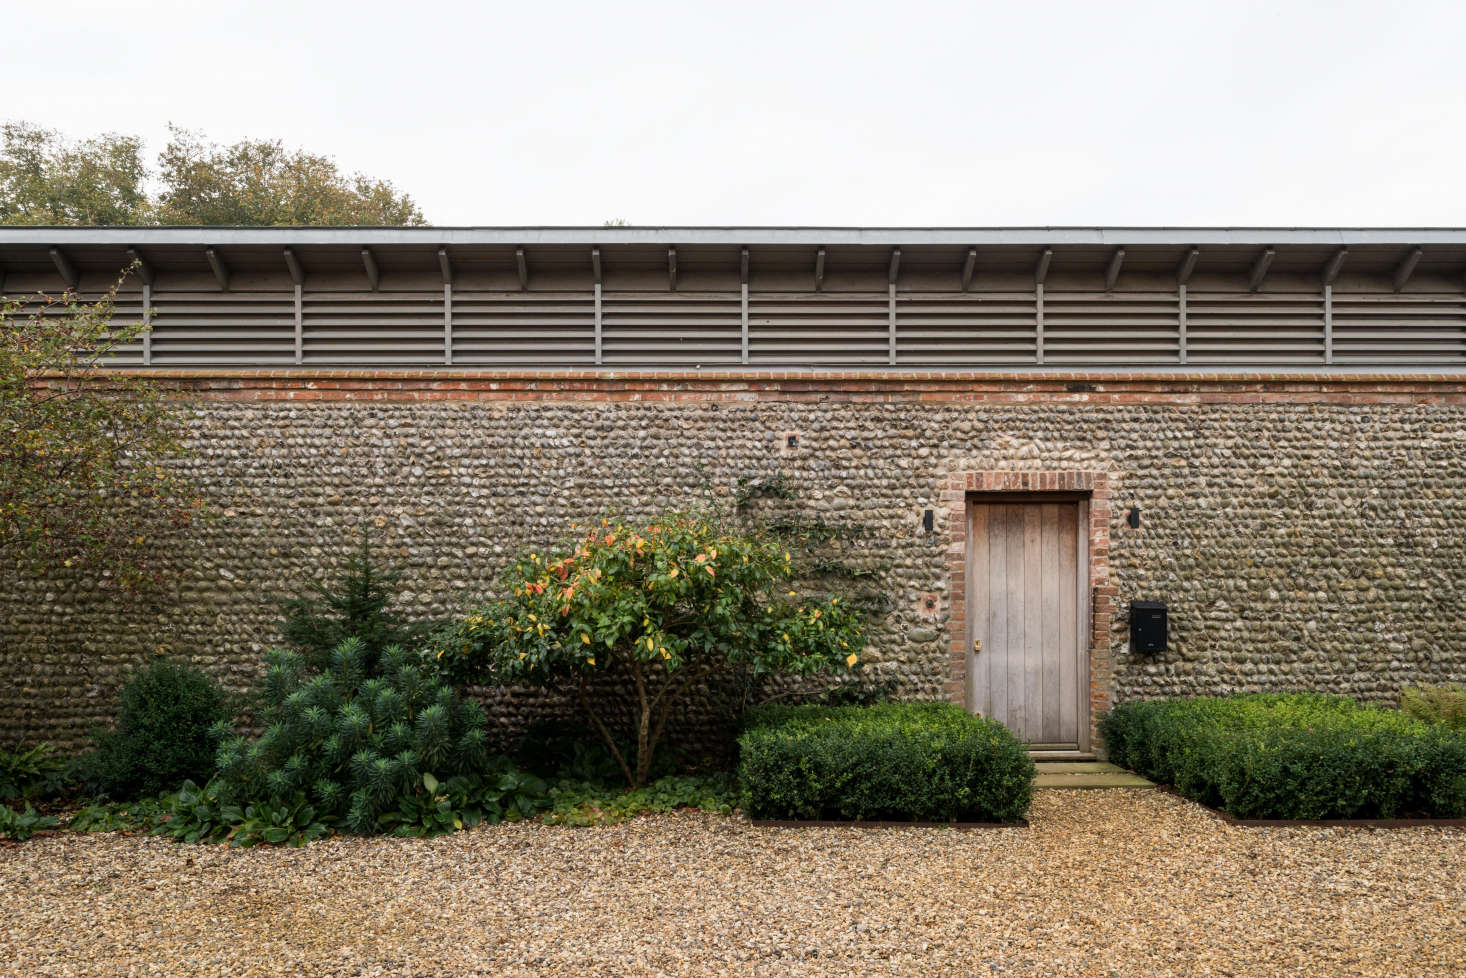 Against the flint facade of the piggery, Erlam planted a mix of shrubs and perennials such as euphorbia (at Left), edged by a gravel courtyard.